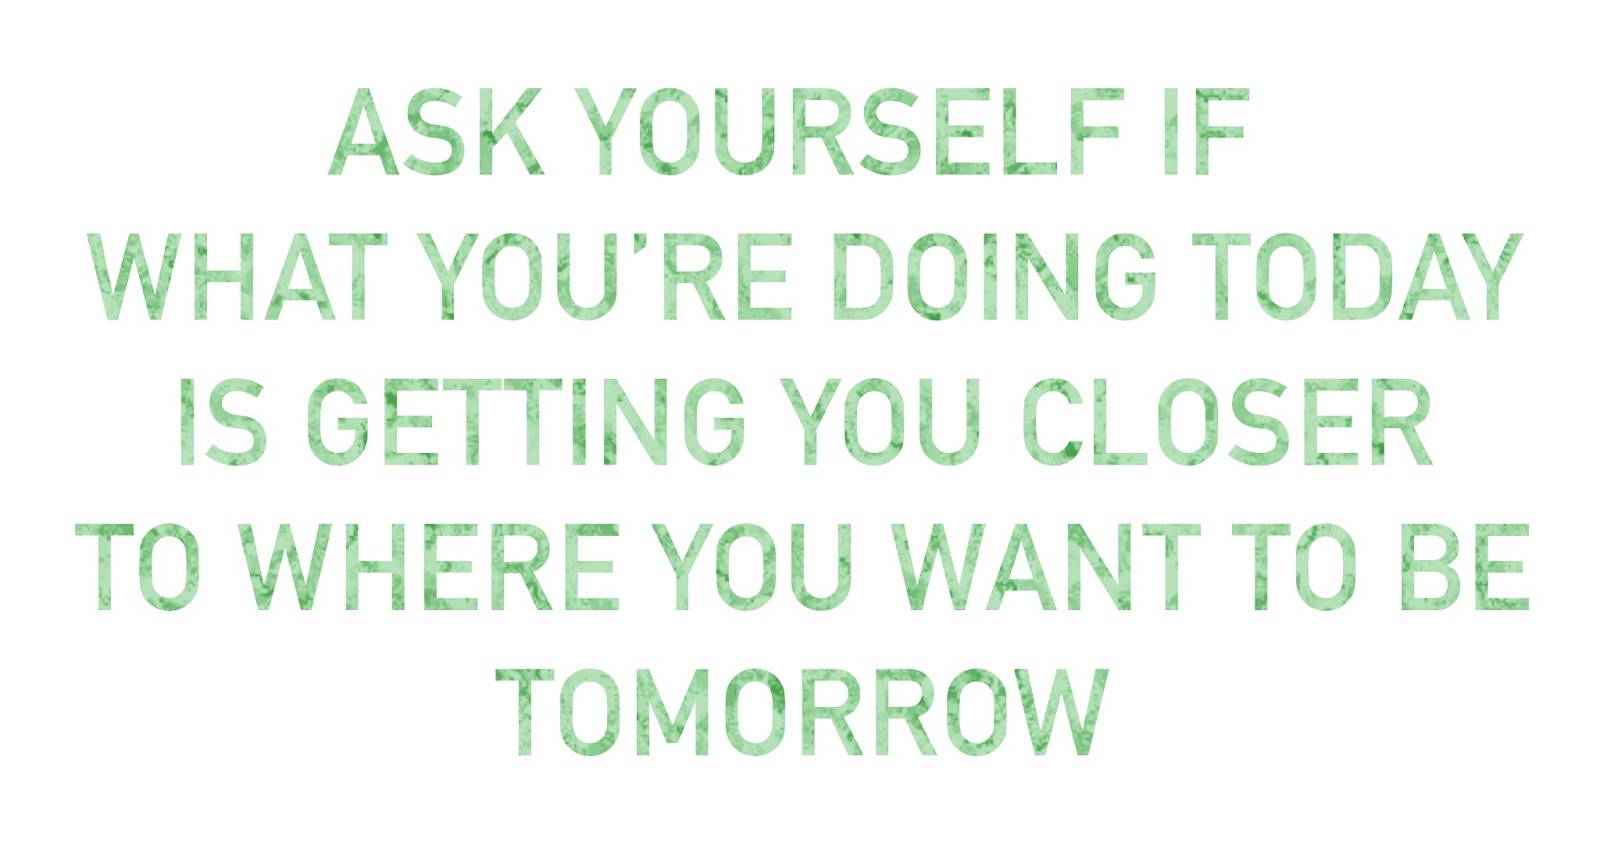 Ask yourself if what you're doing today is getting you to where you want to be tomorrow